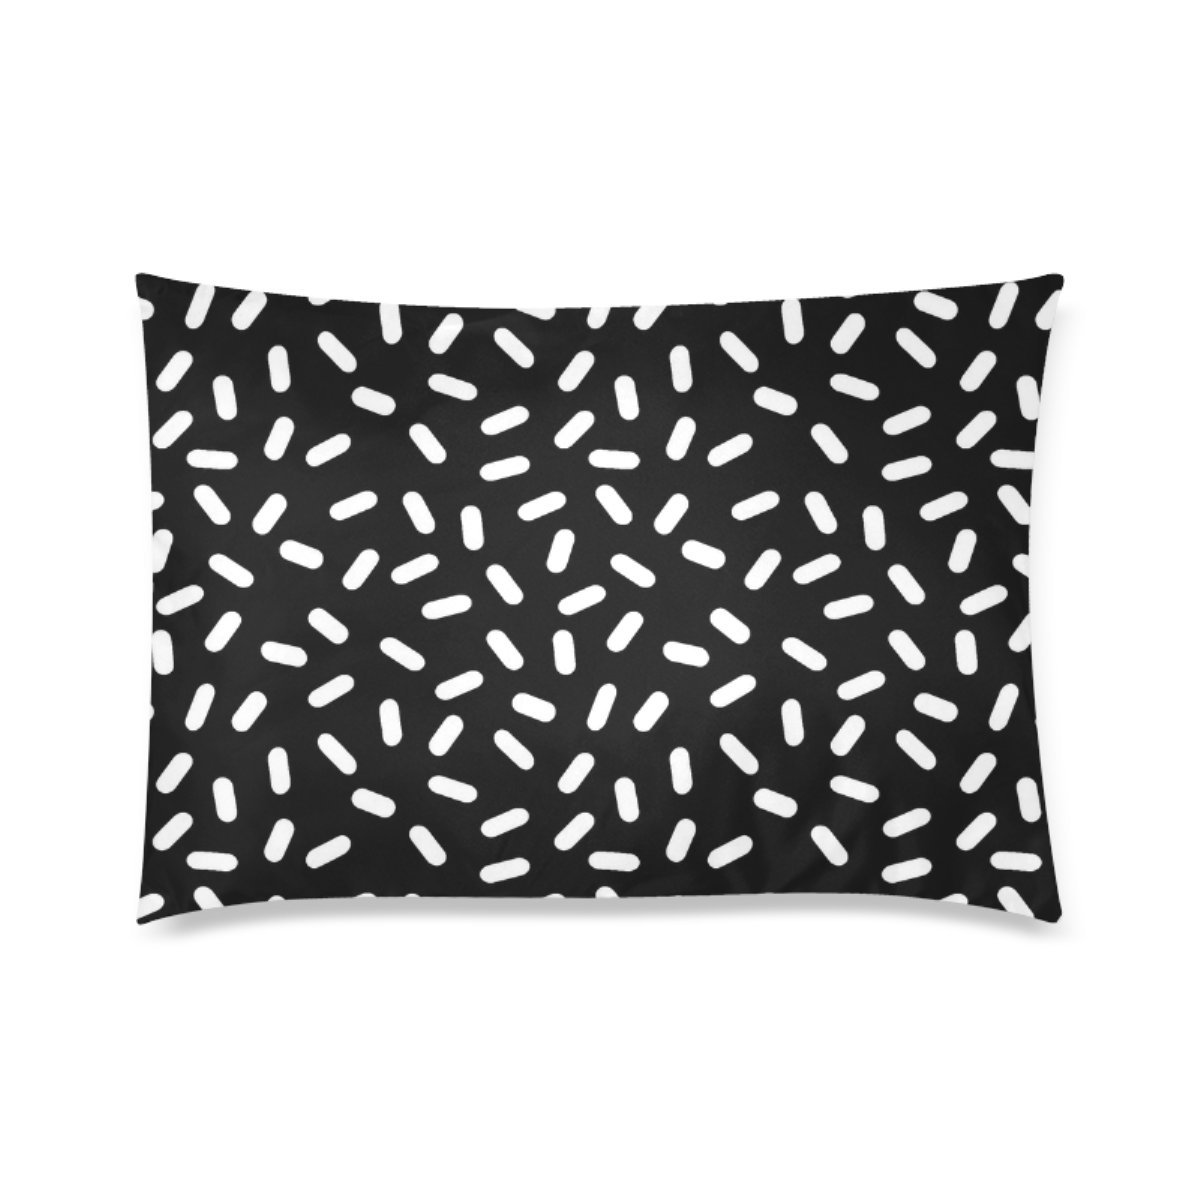 Personalized Bingo Black And White Personalized Pillowcases Zippered Pillow Covers 20 by 30 Inches Two Sides